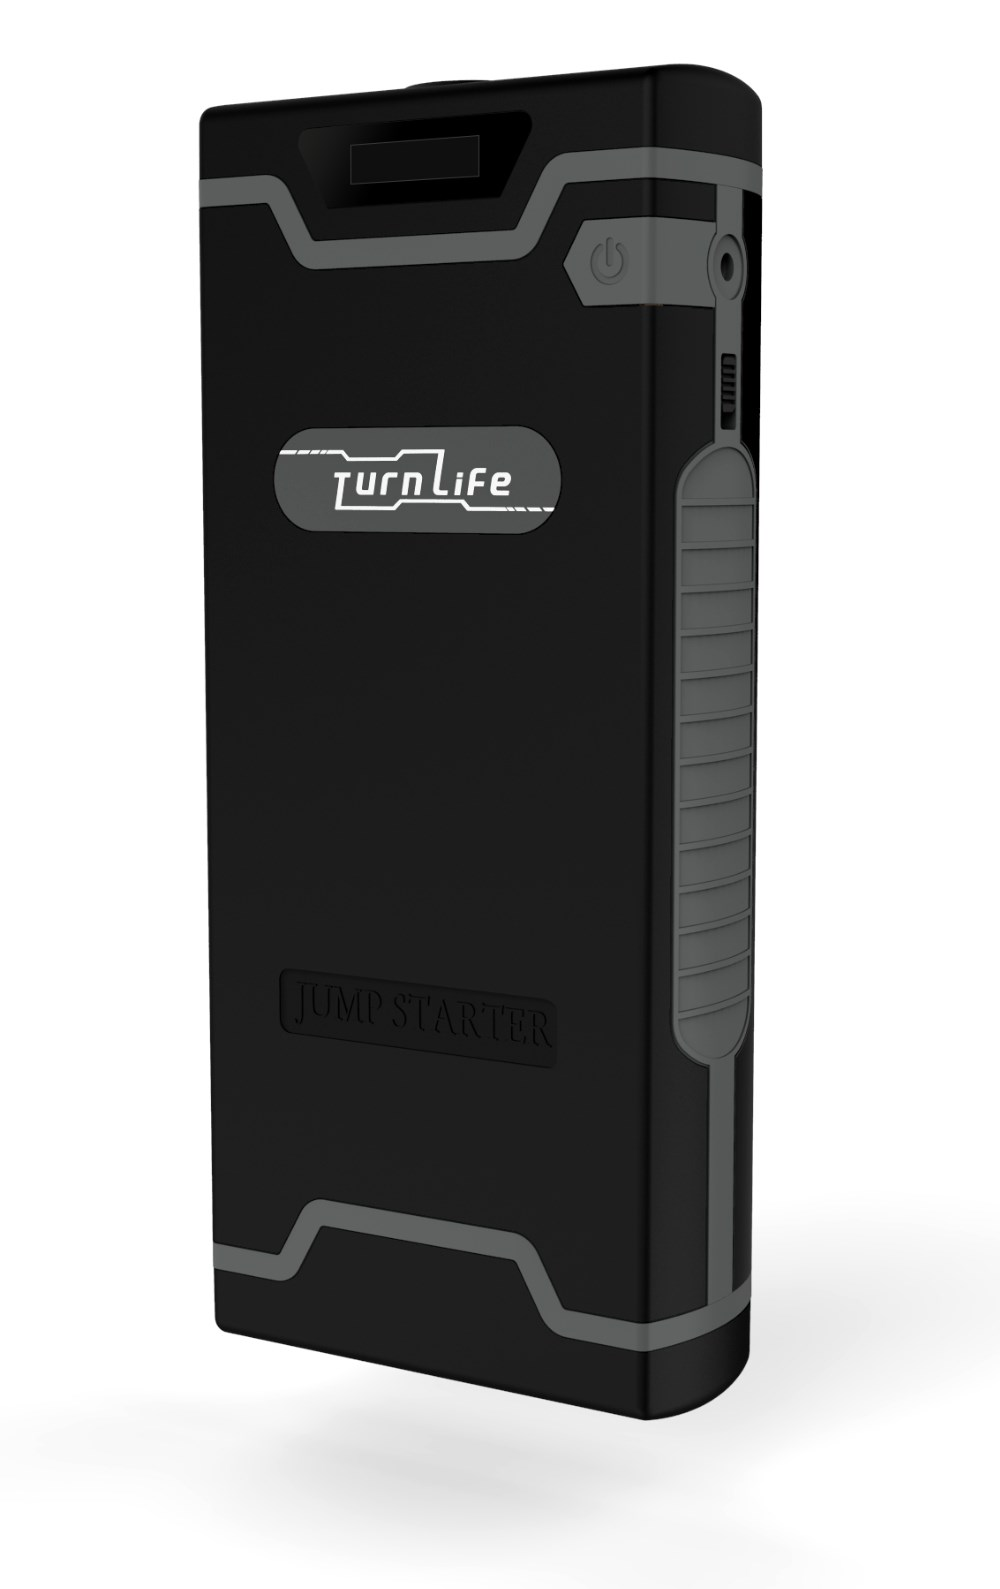 Newest Turnlife 13500mah mini portable rechargeable multi function DC 12V car jump starter and car emergency battery